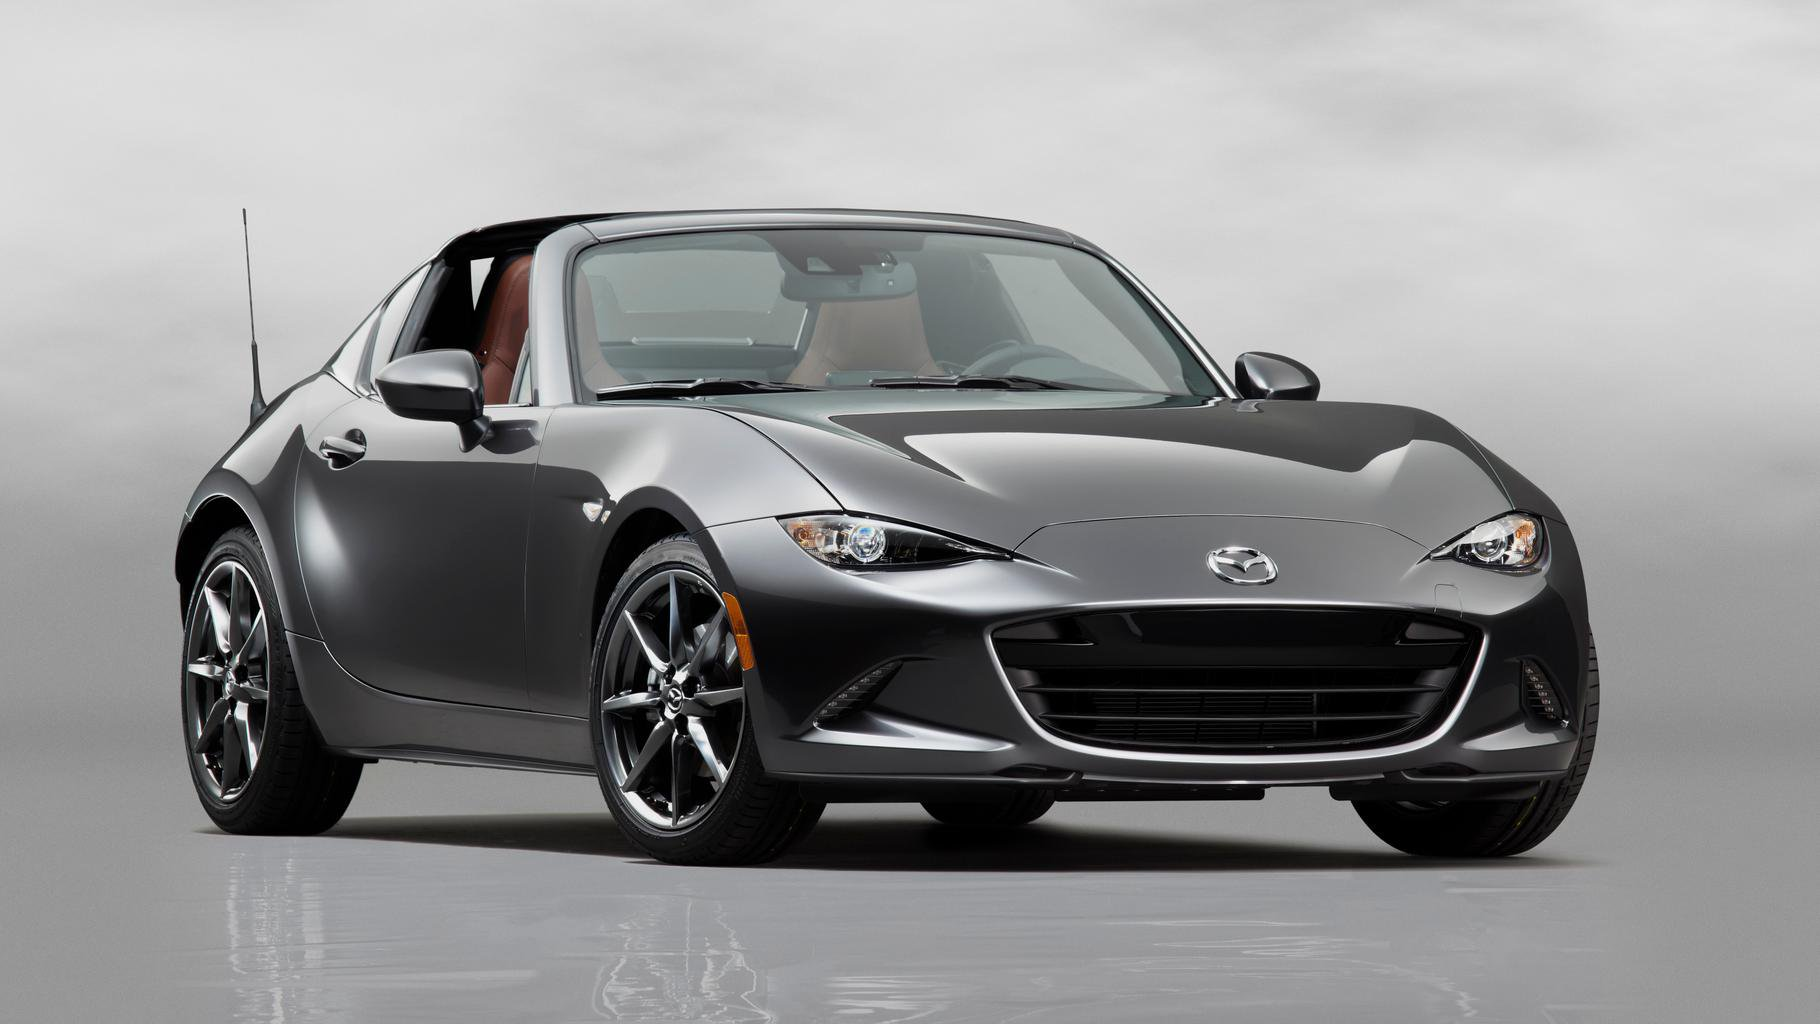 2017 Mazda MX-5 RF - exclusive reader test team preview